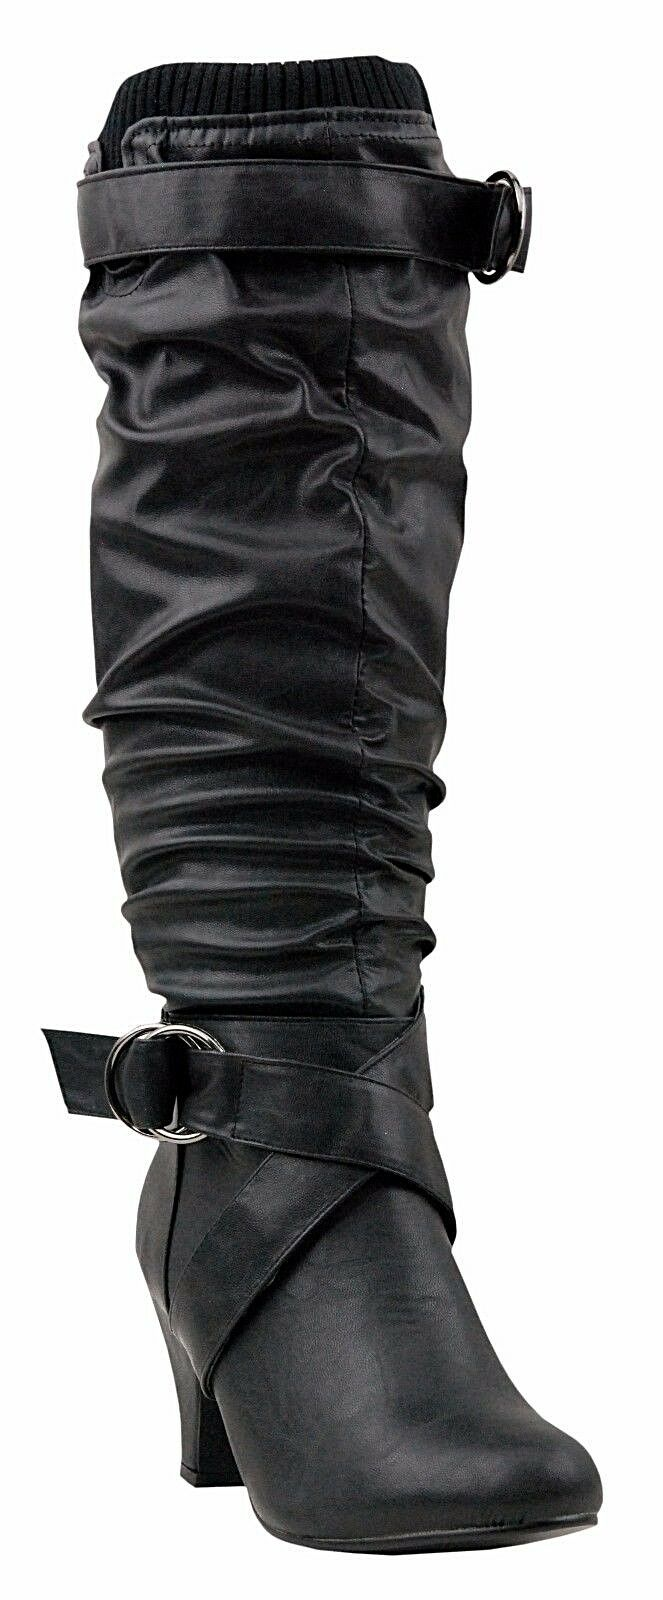 NEW Women Ladies Tall Knee High Faux Leather Black Slouch Winter Sweater Boot Sz